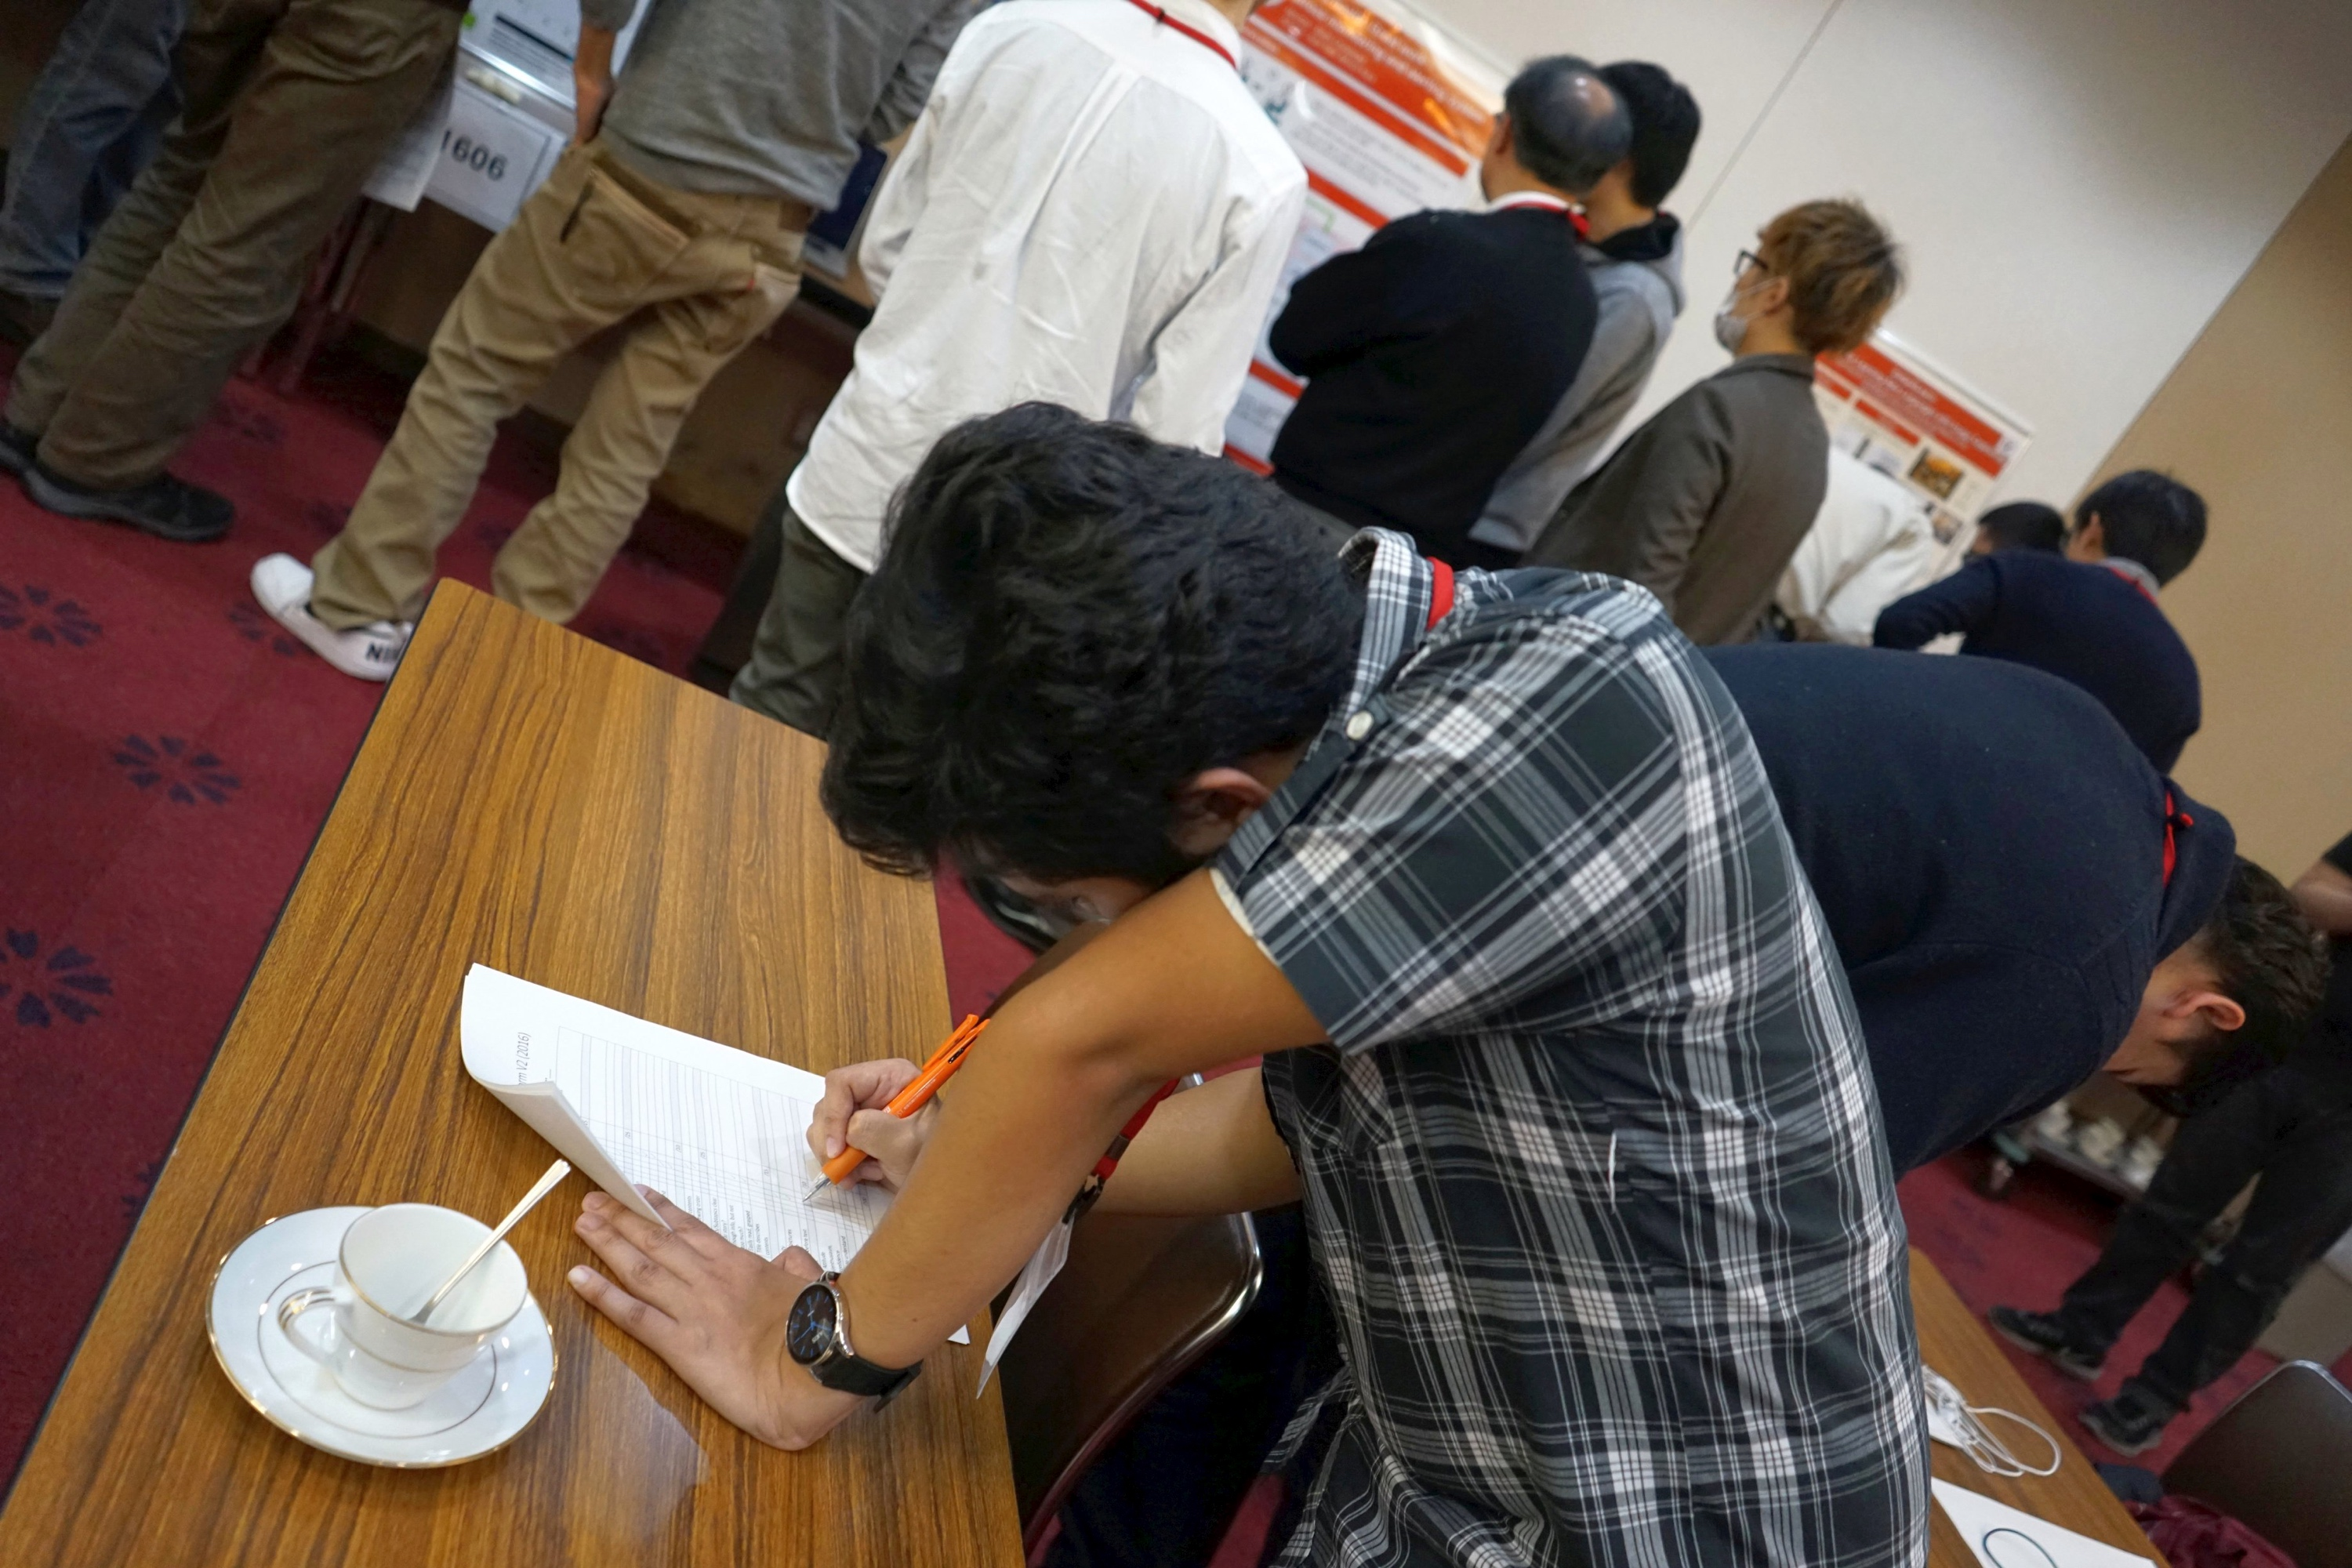 Participants judged each other's posters to study their weaknesses and overtake their dynasties.